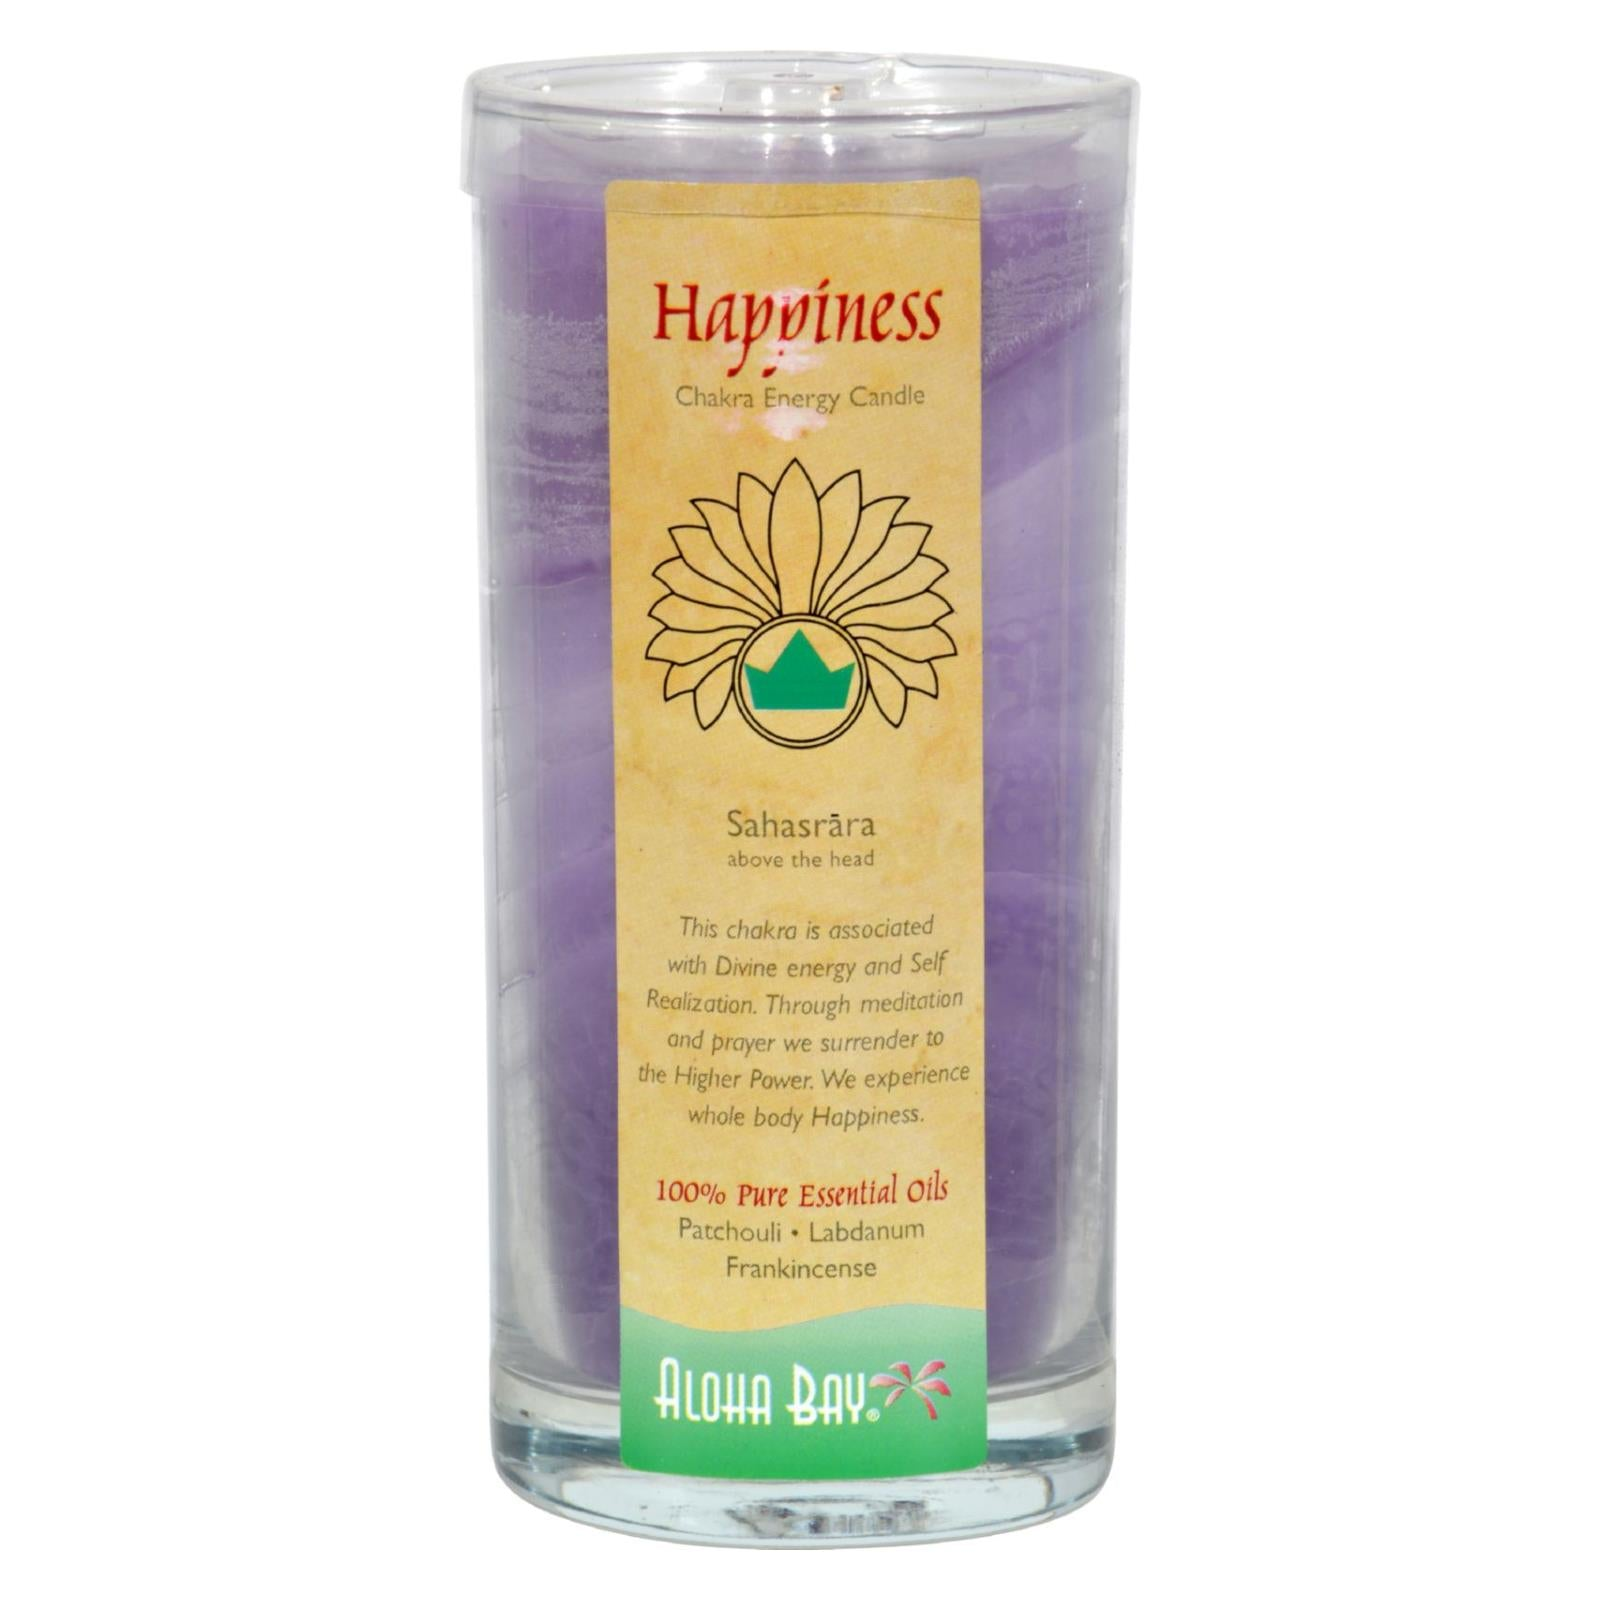 Buy Aloha Bay Chakra Candle Jar Happiness - 11 oz - Jar Candles from Veroeco.com